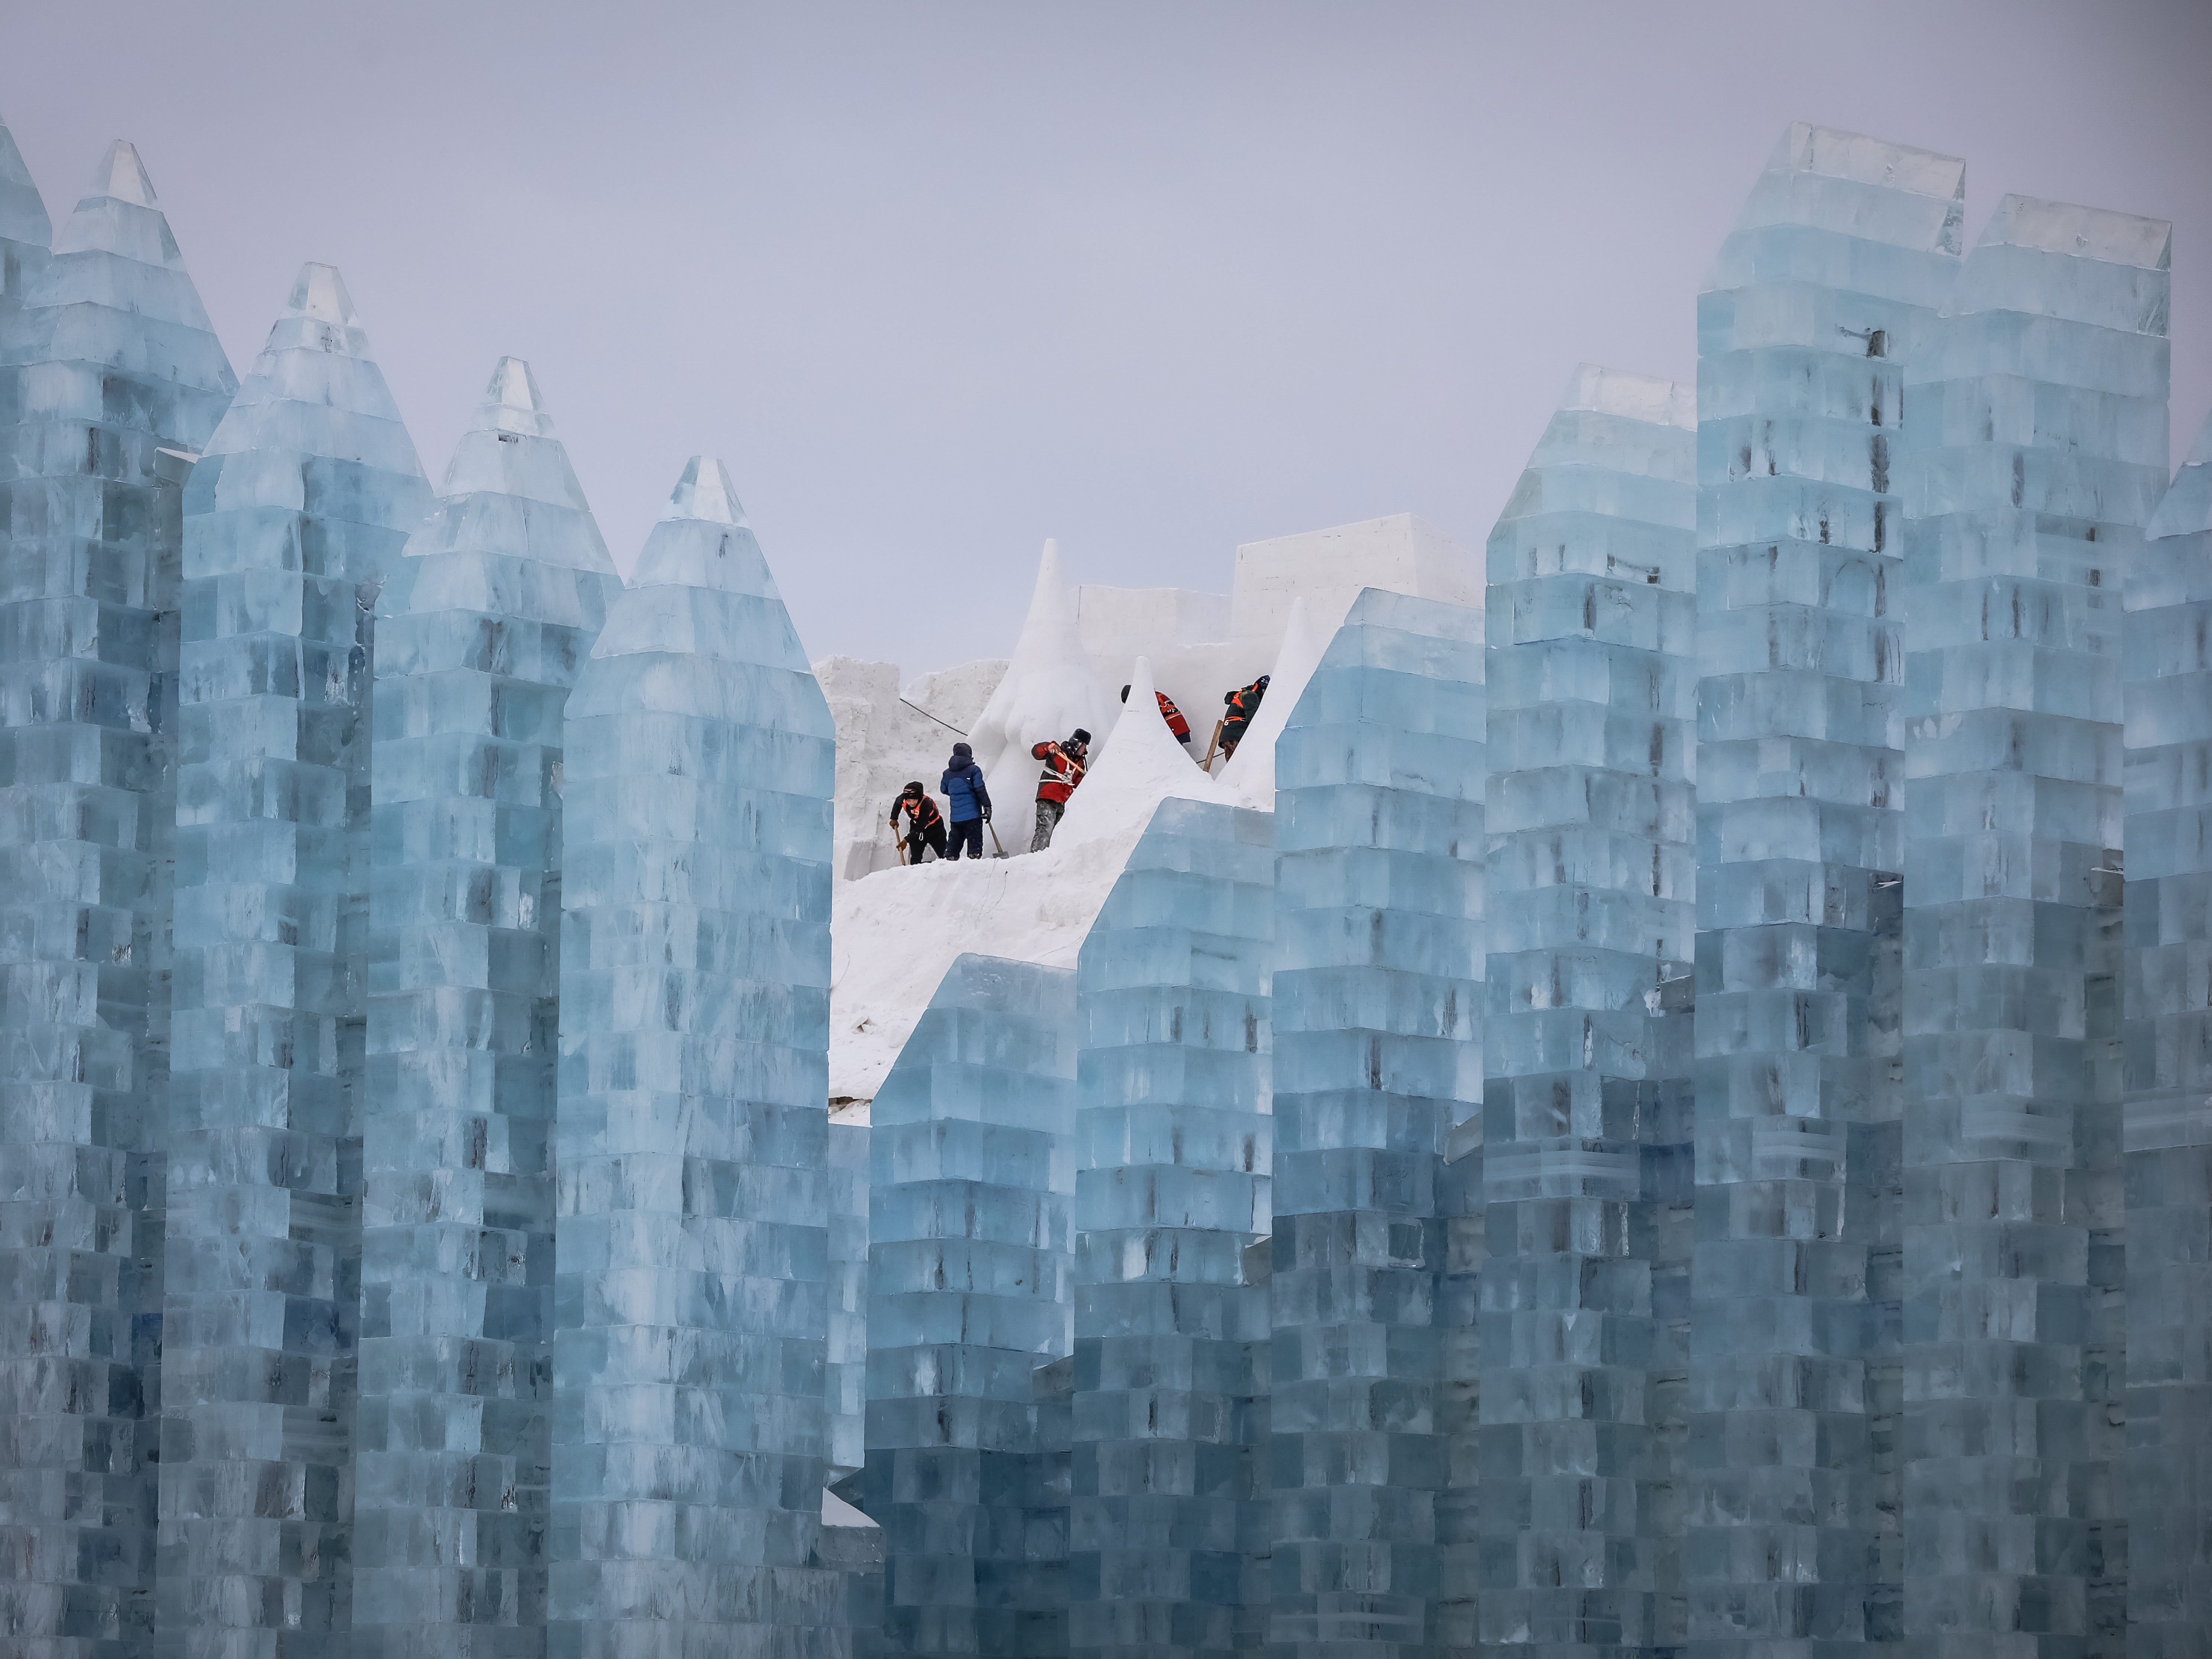 Workers prepare the snow sculptures.